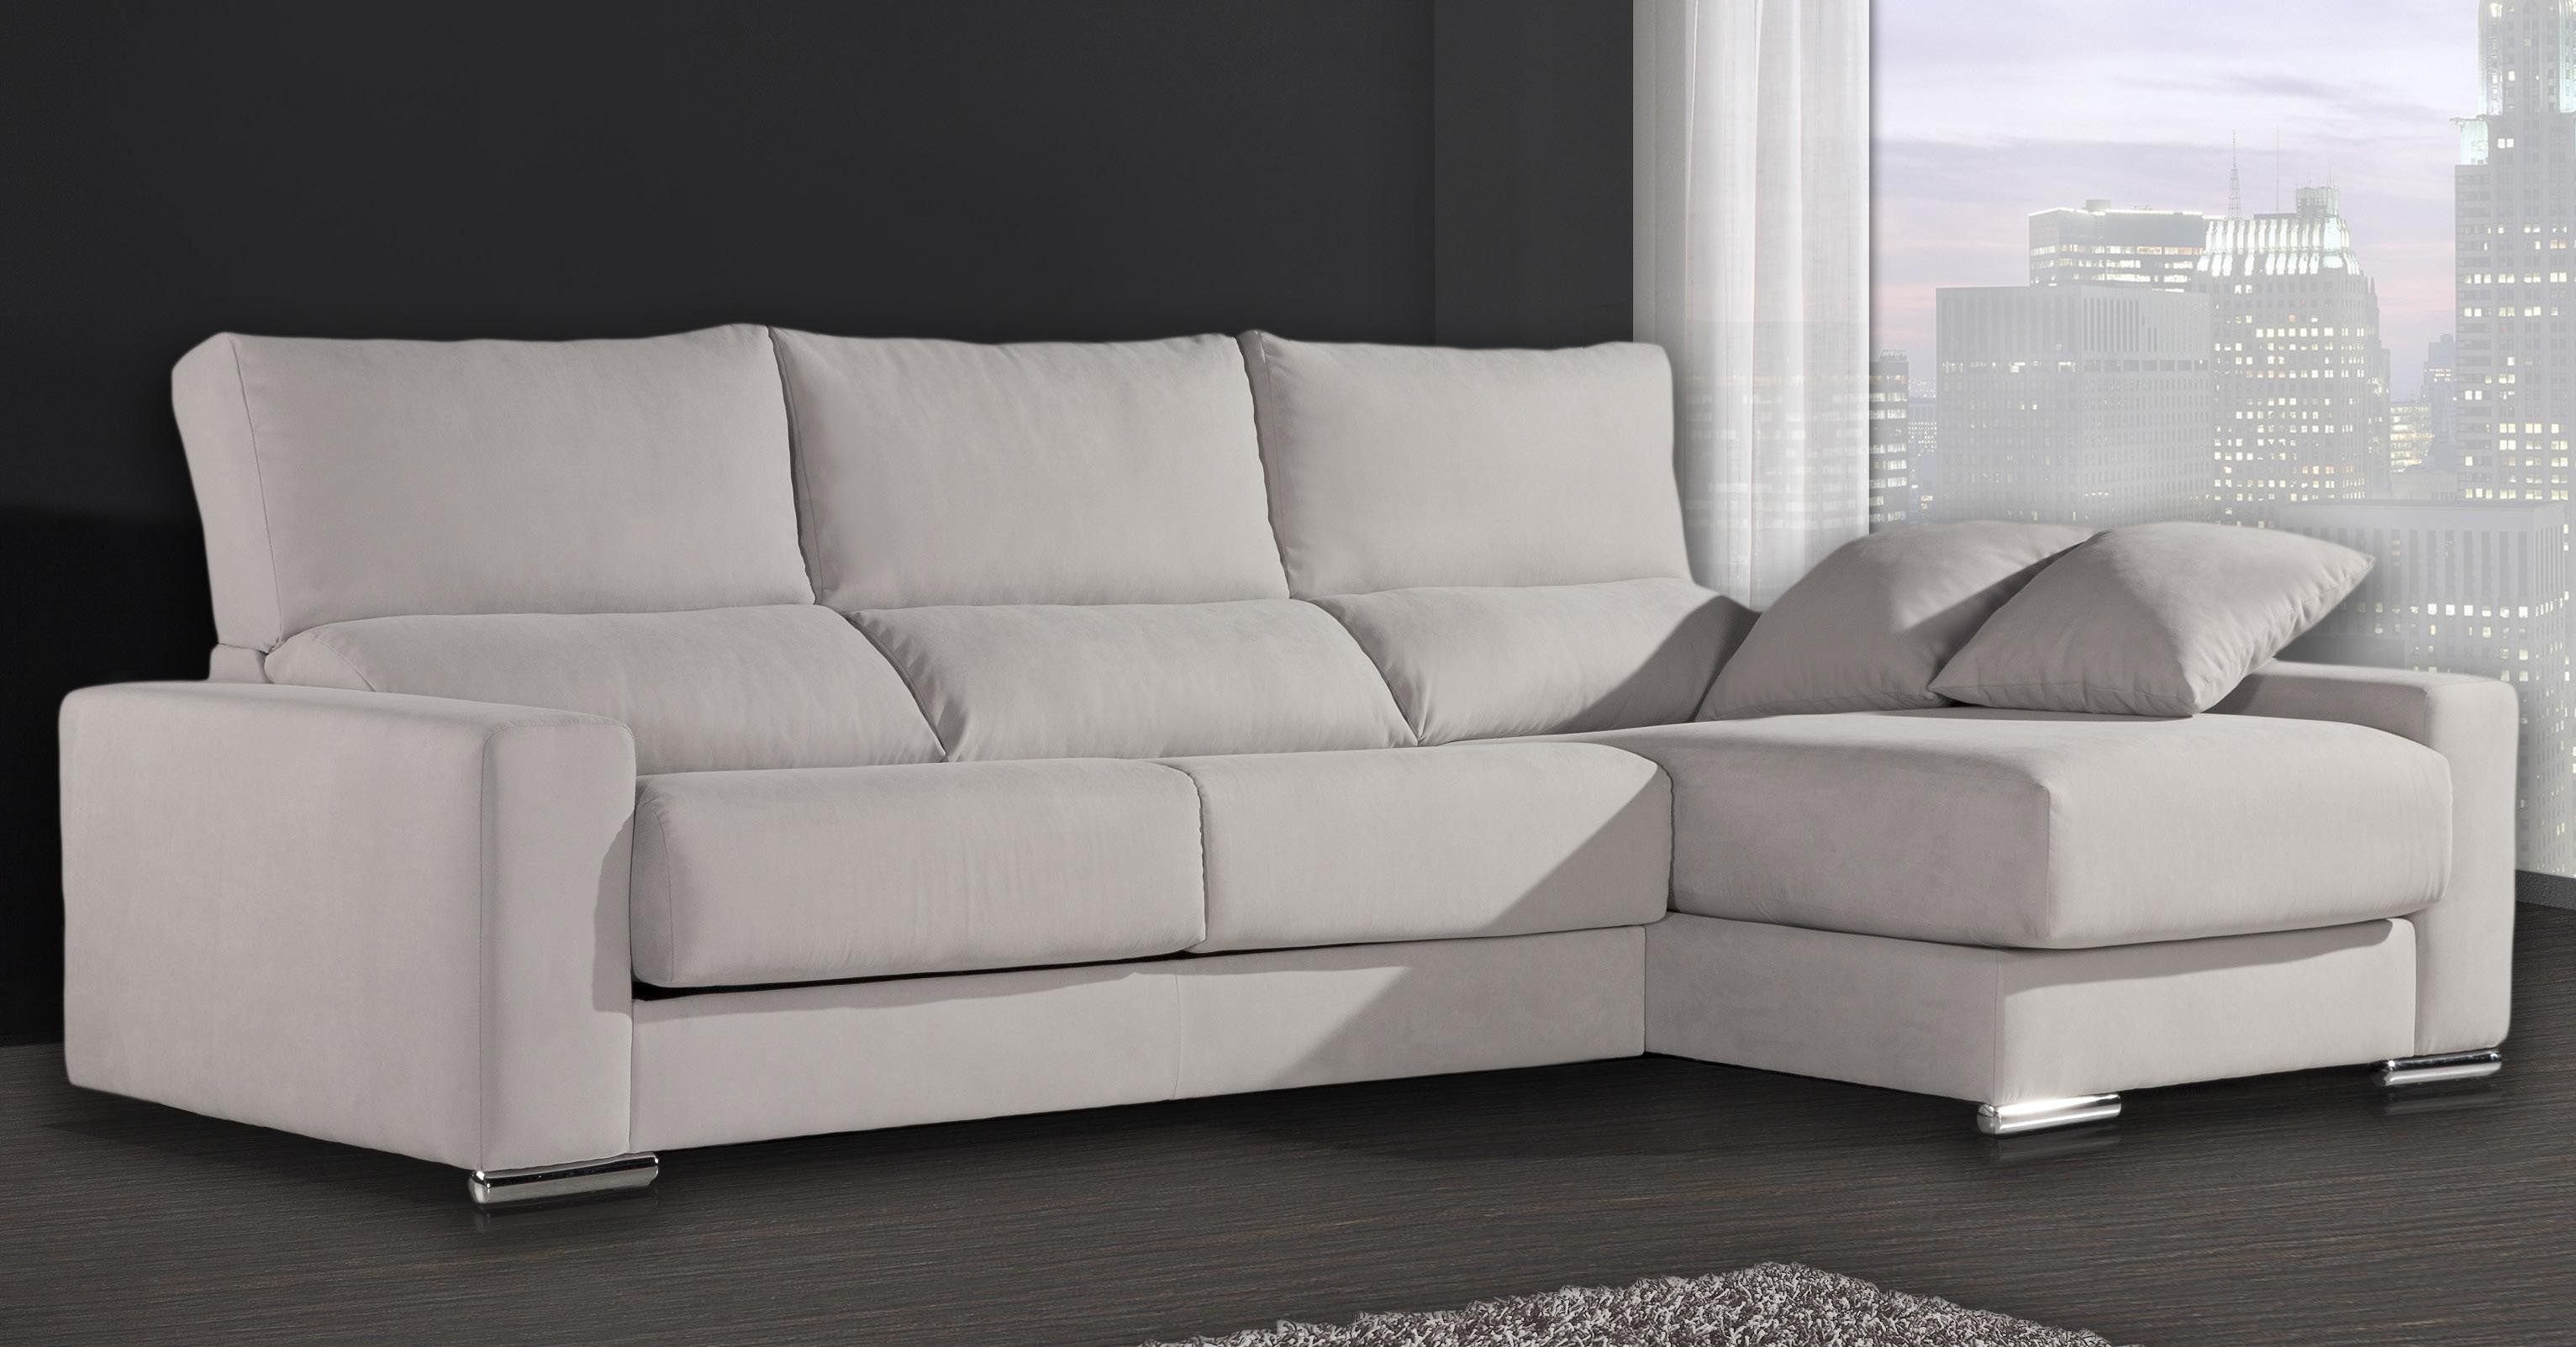 Sofas Cama Chaise Longue Sofas Y Chaise Longue Baratos